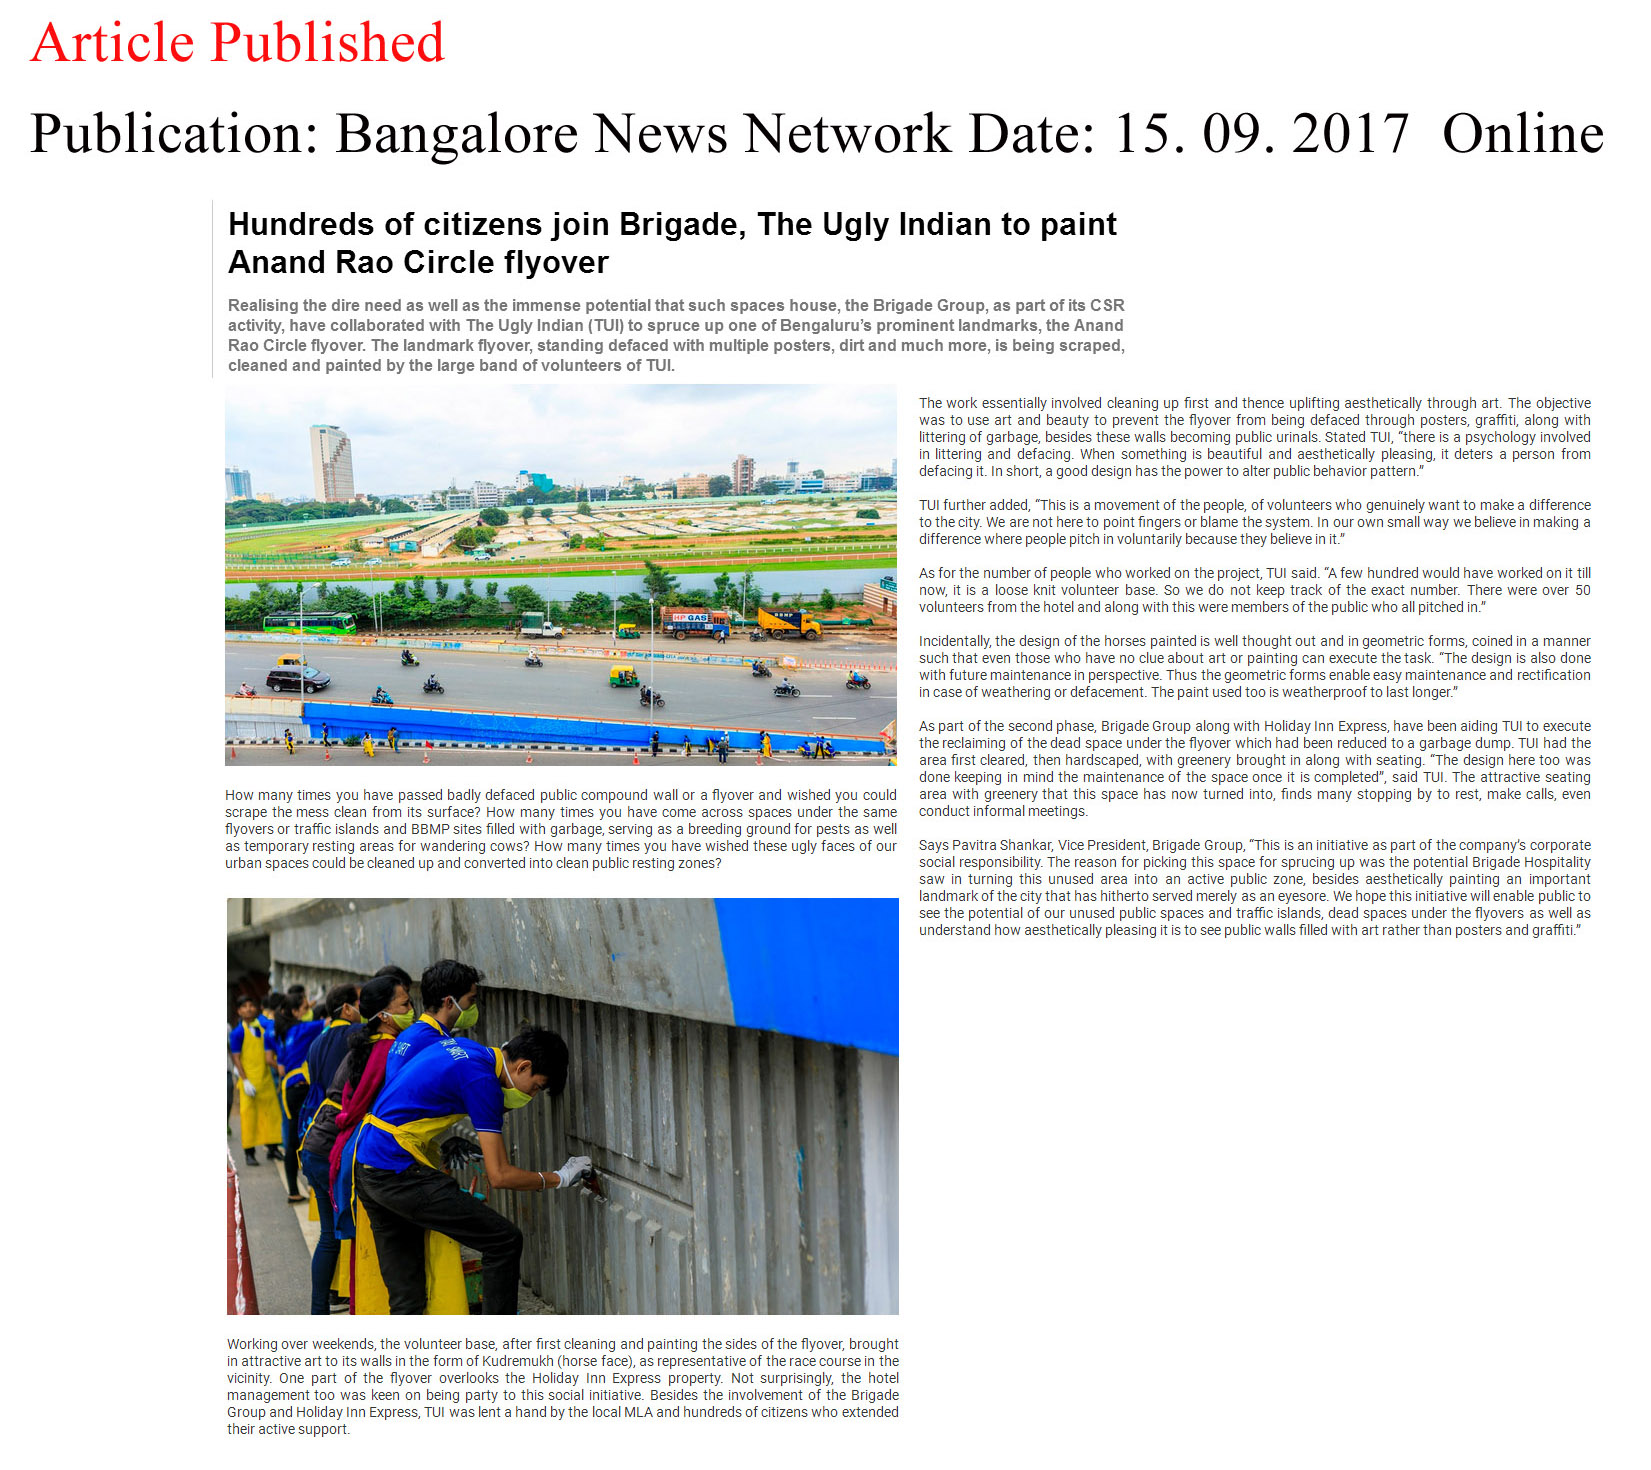 Hundreds of citizens join Brigade, The Ugly Indian to paint Anand Rao Circle flyover—Bangalore News Network–Online